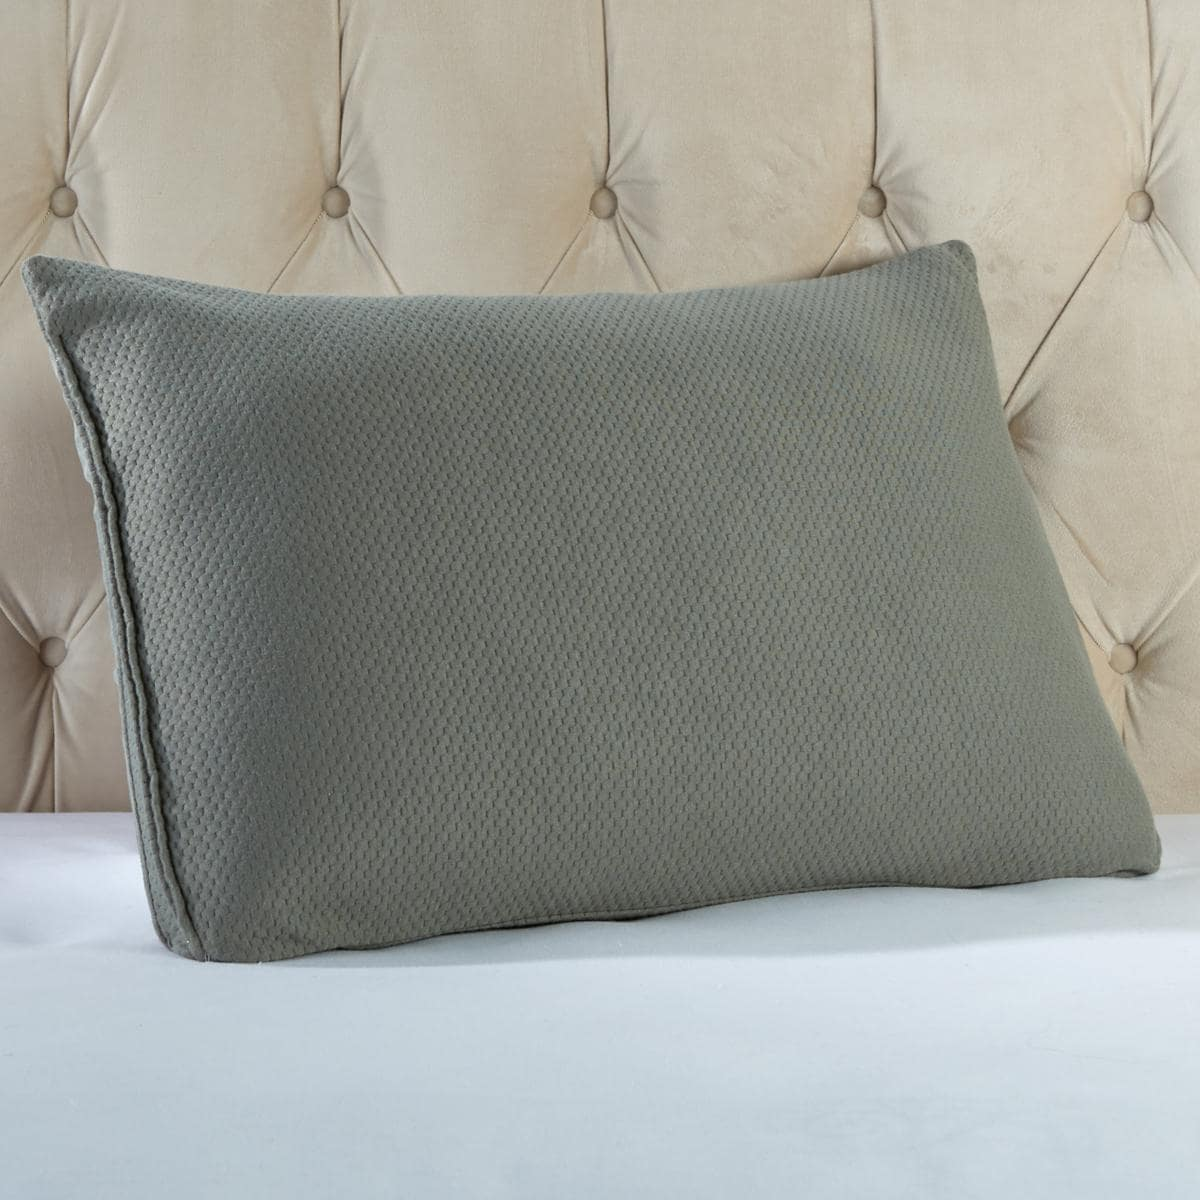 Joy Mangano MemoryCloud Warm & Cool Jumbo Pillow Silver